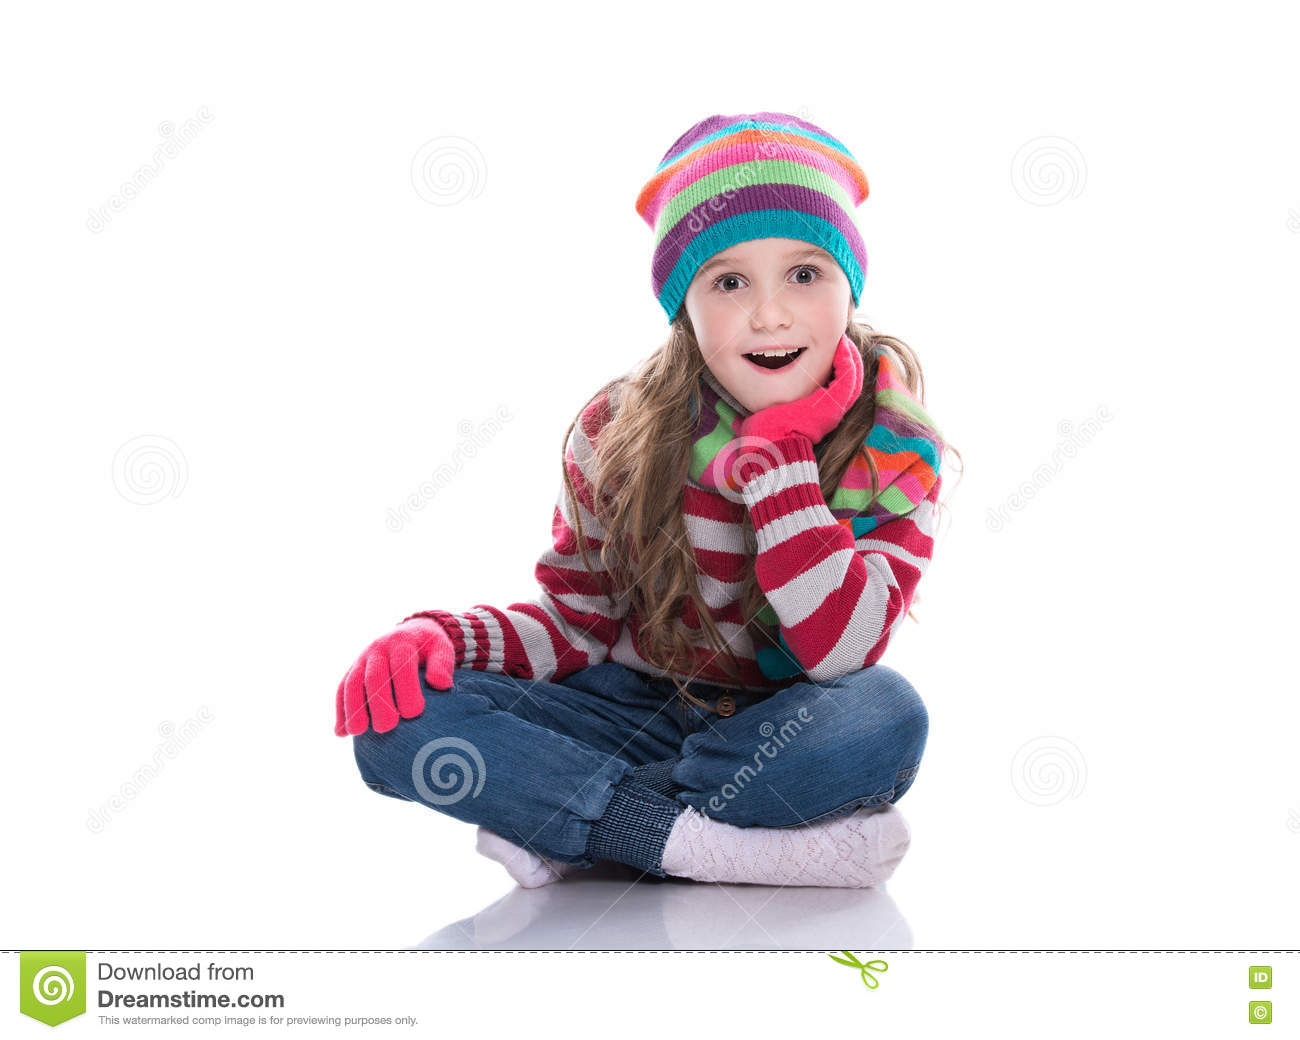 e31439d3c Smiling Pretty Little Girl Wearing Colorful Knitted Scarf